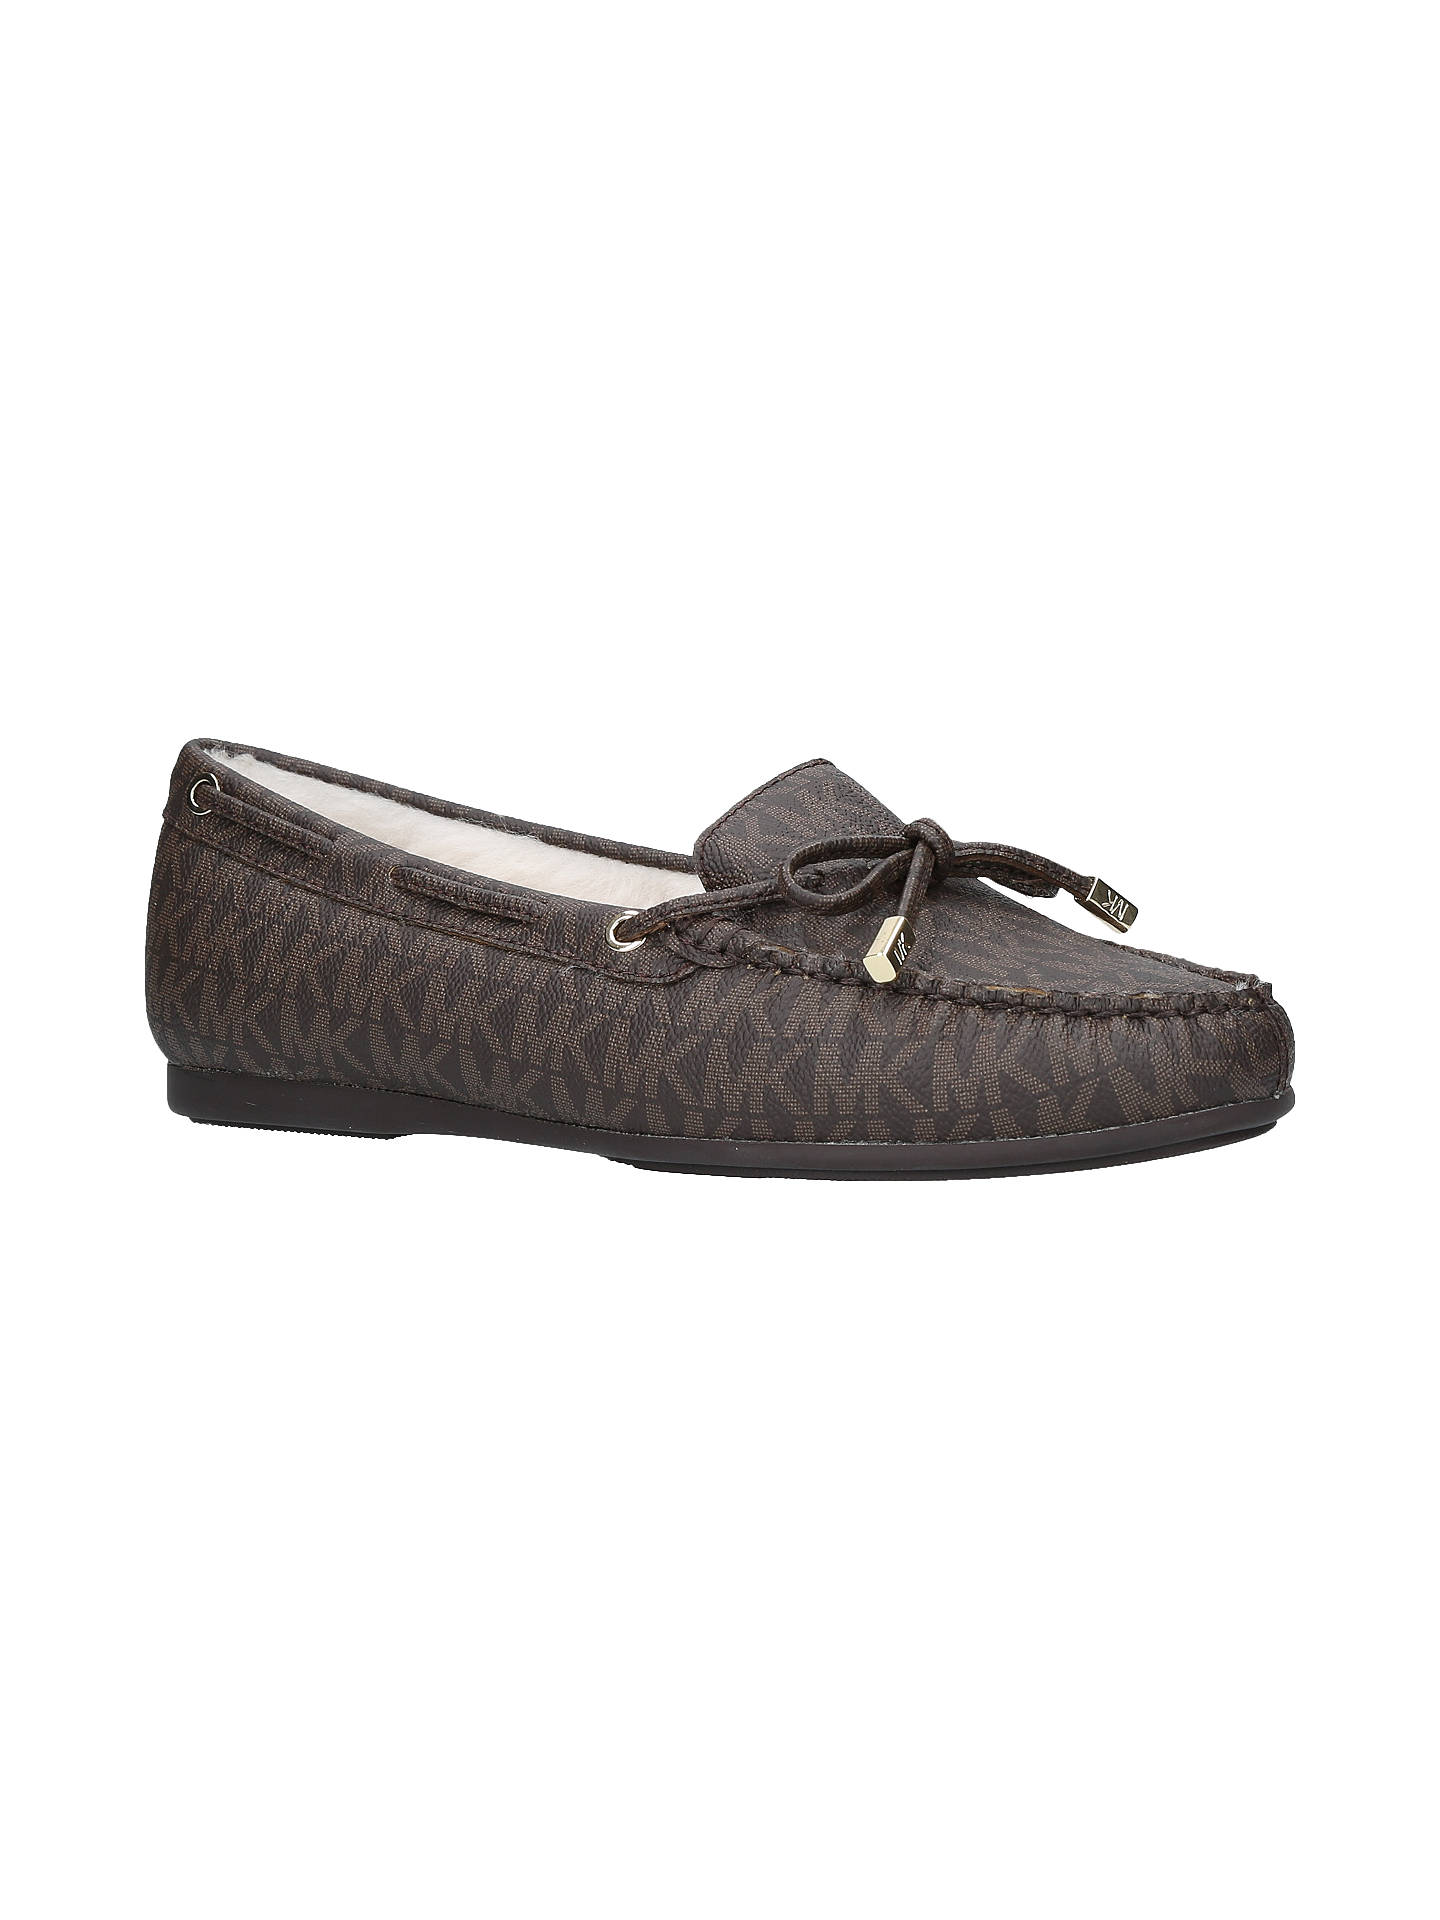 1b9a35198ce Buy MICHAEL Michael Kors Sutton Moccasins, Brown Leather, 3 Online at  johnlewis.com ...